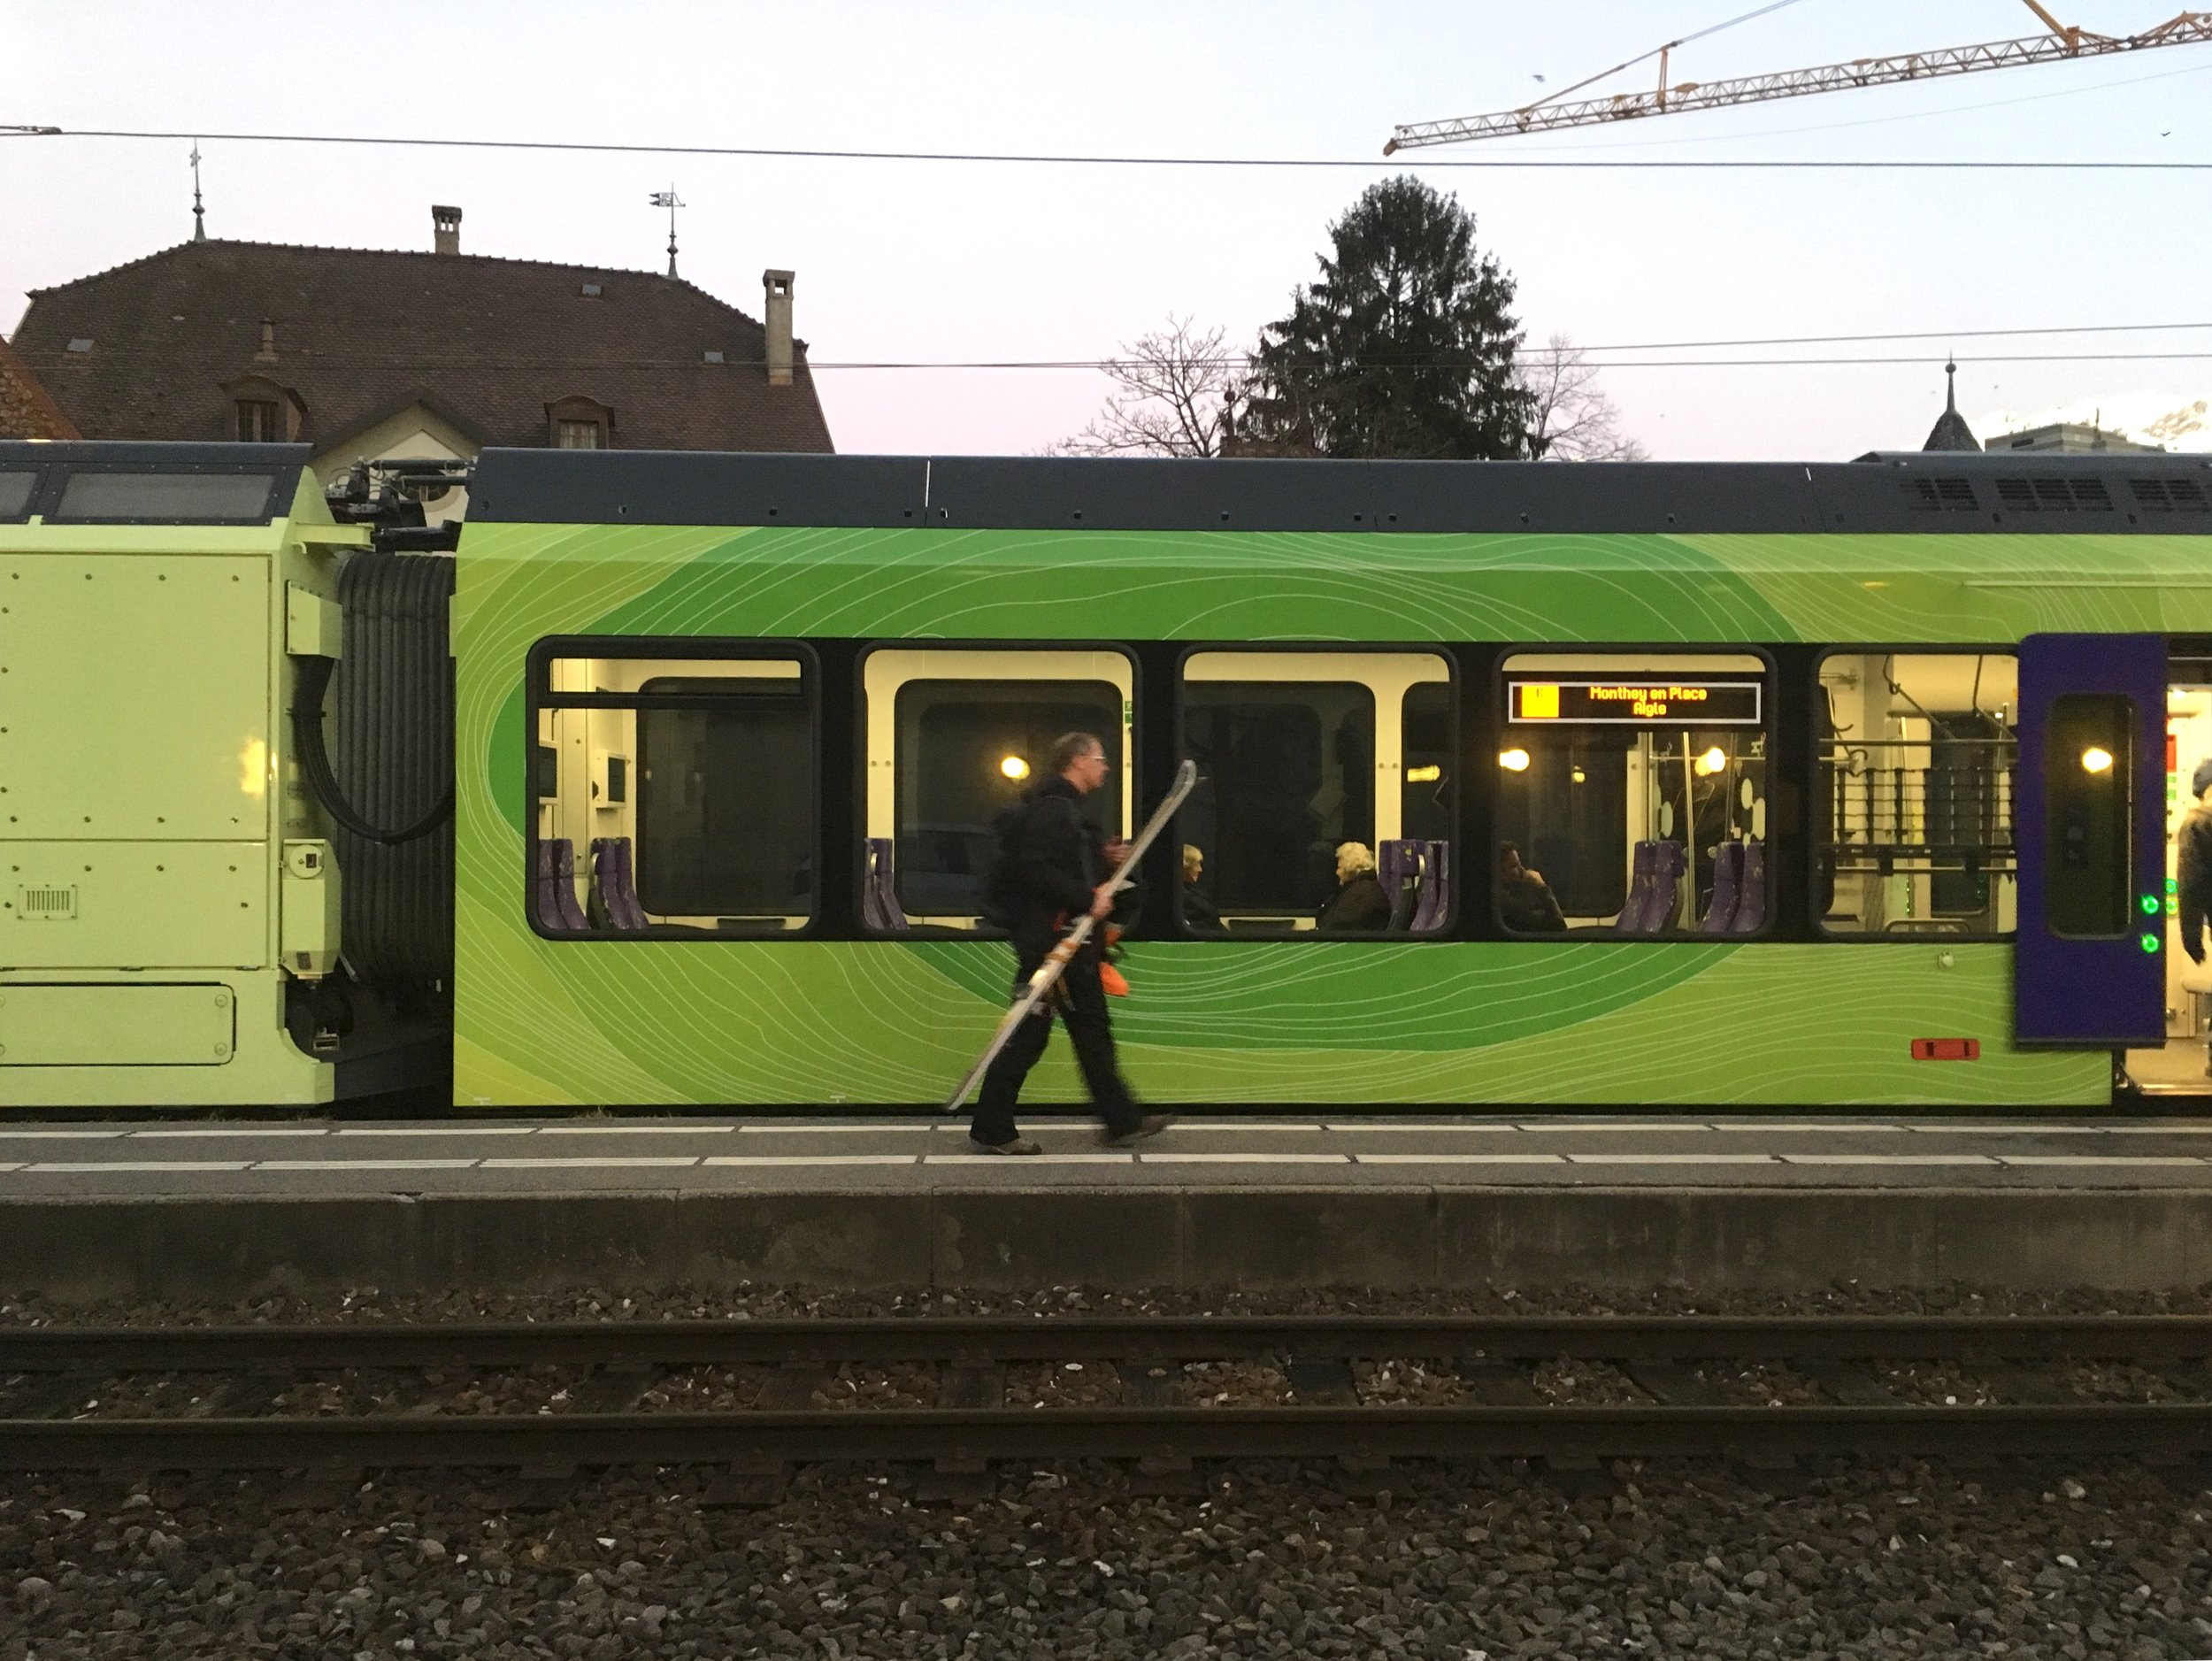 The little green train that takes us up to a slice of heaven - back down after an afternoon ski - happy Tony.